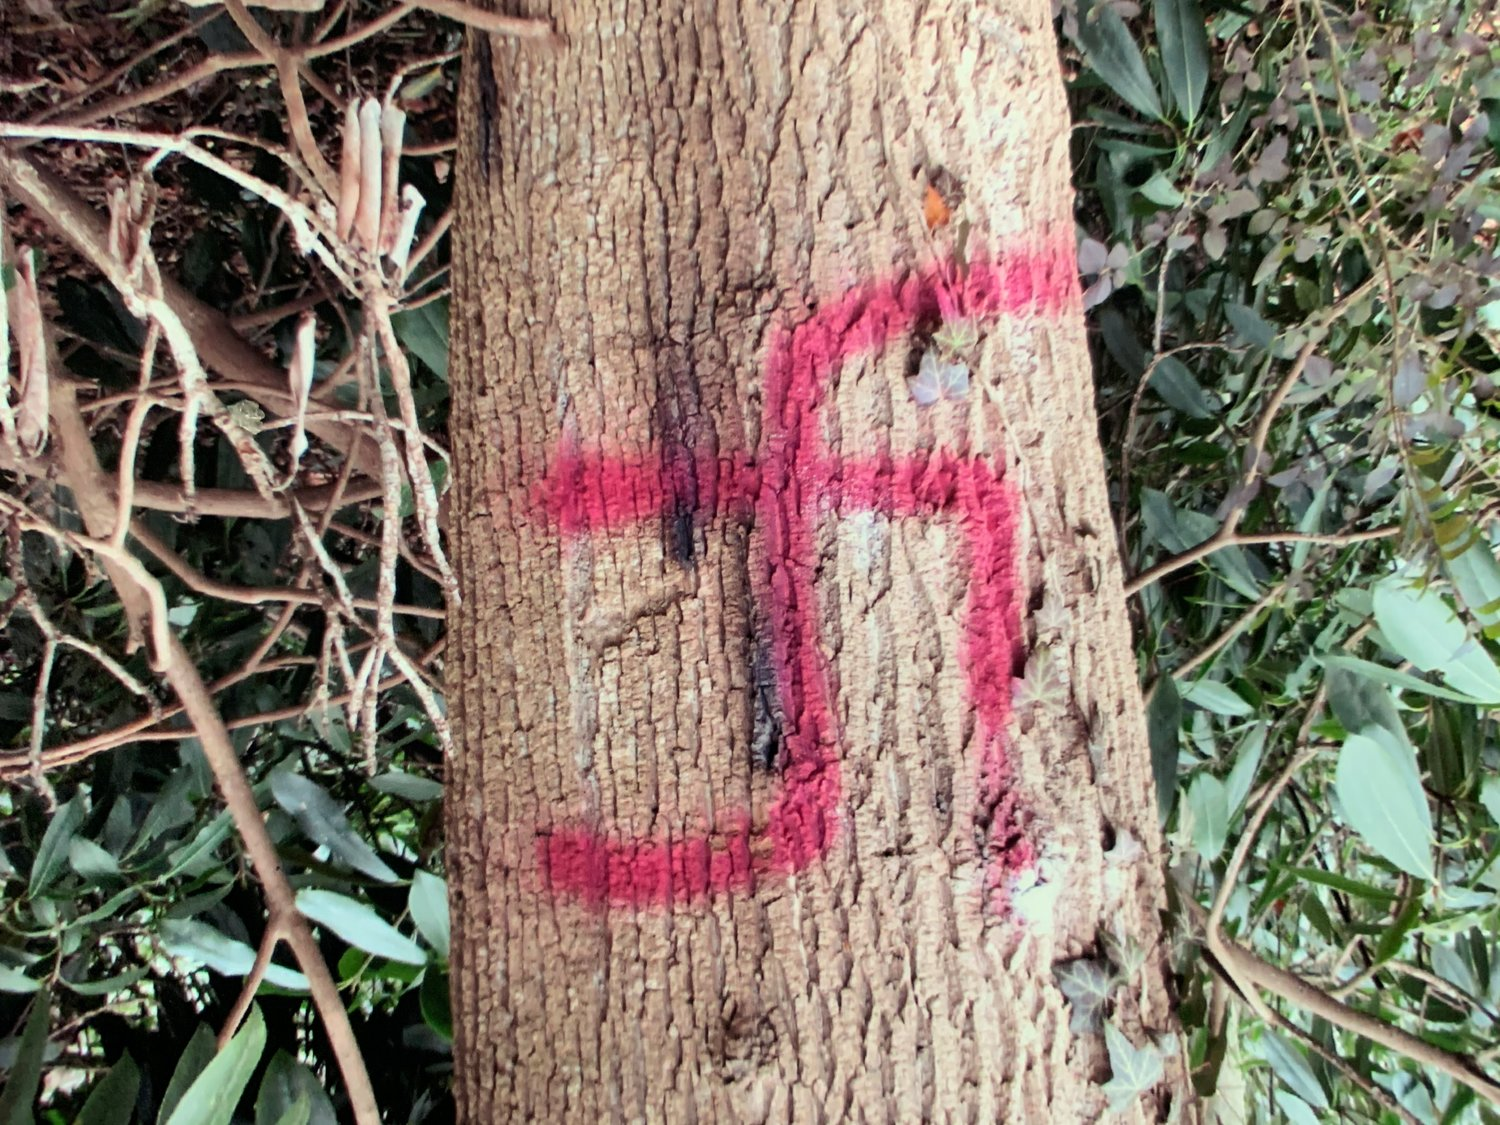 Swastikas were found at the Holocaust Memorial and Tolerance Center on Dec. 3, the second incident of such hate-related graffiti in recent weeks.